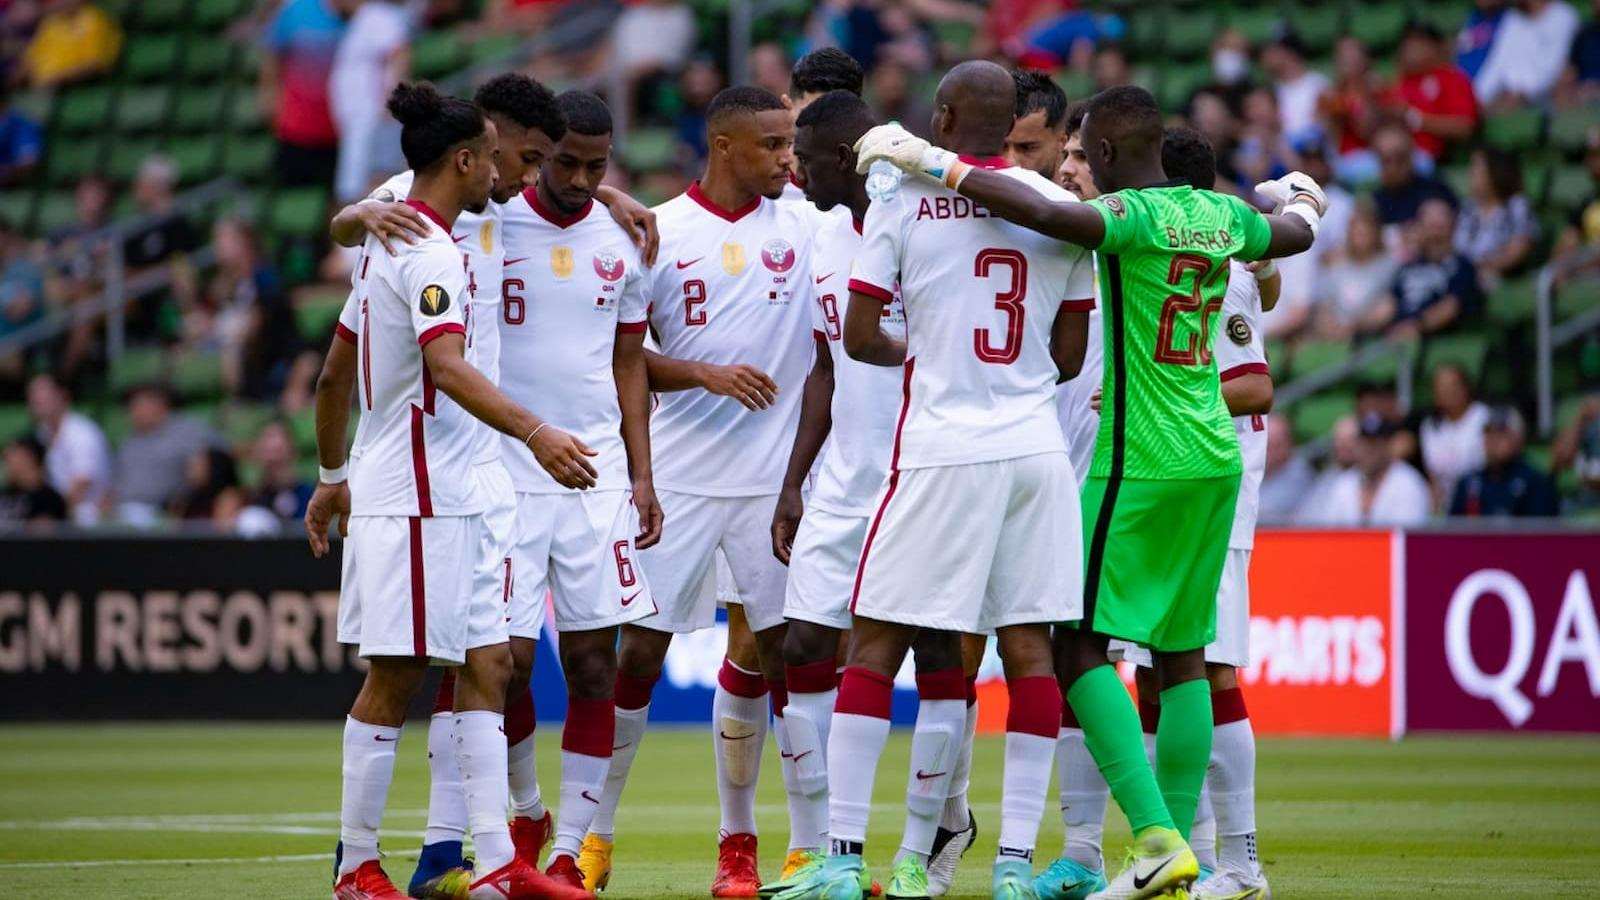 Qatar rue missed penalty as USA pip The Maroons 1-0 in CONCACAF Gold Cup semifinal